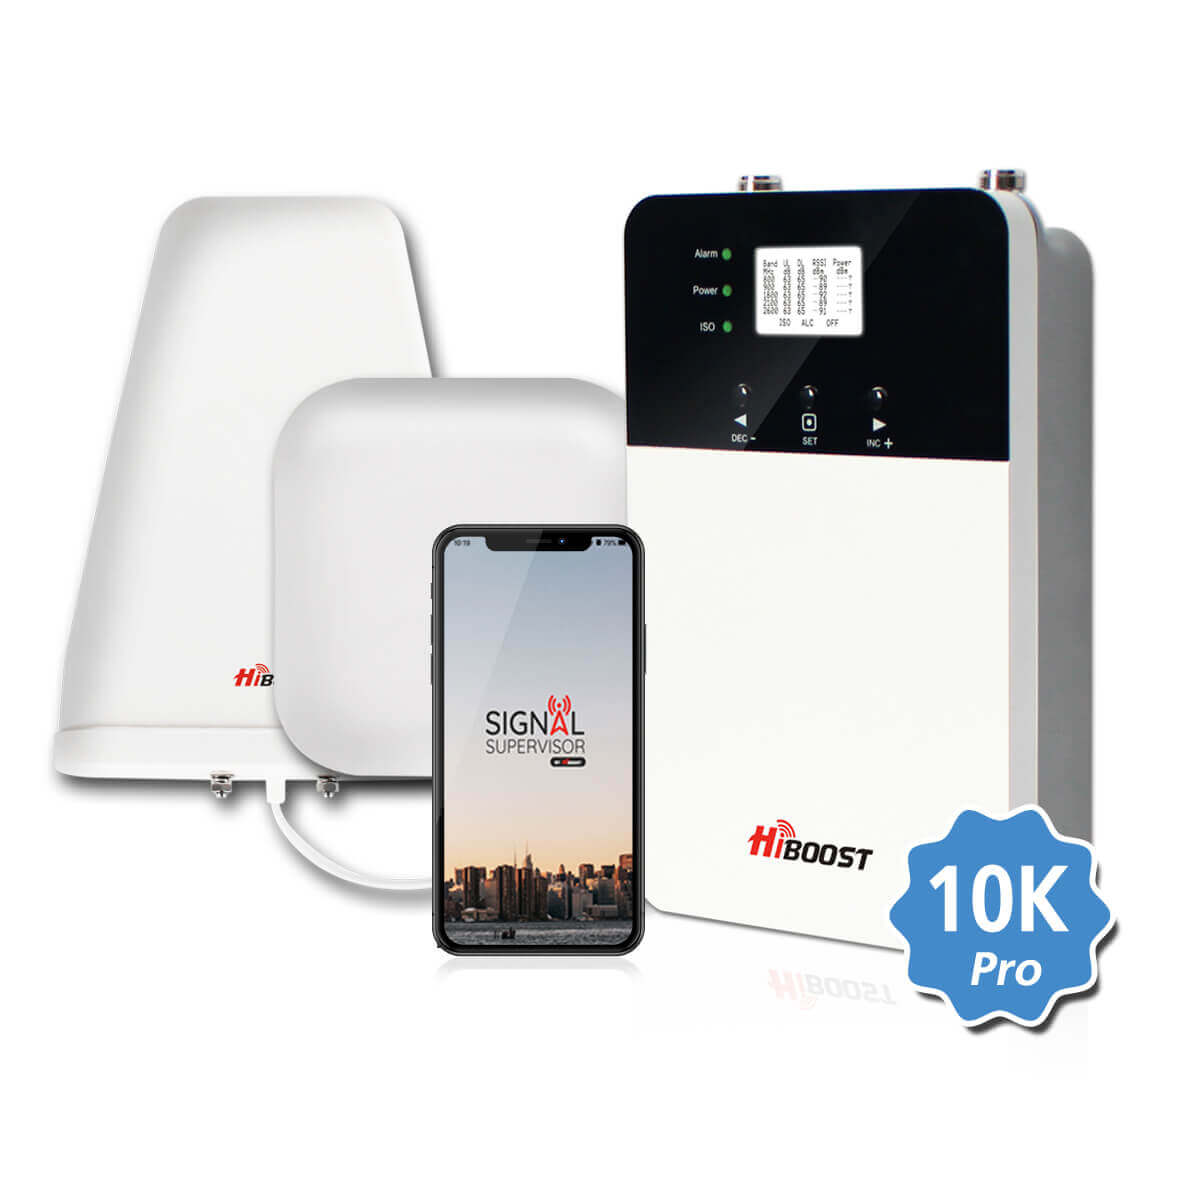 Hiboost-10K-Plus-Pro-Cell-Phone-Signal-Booster